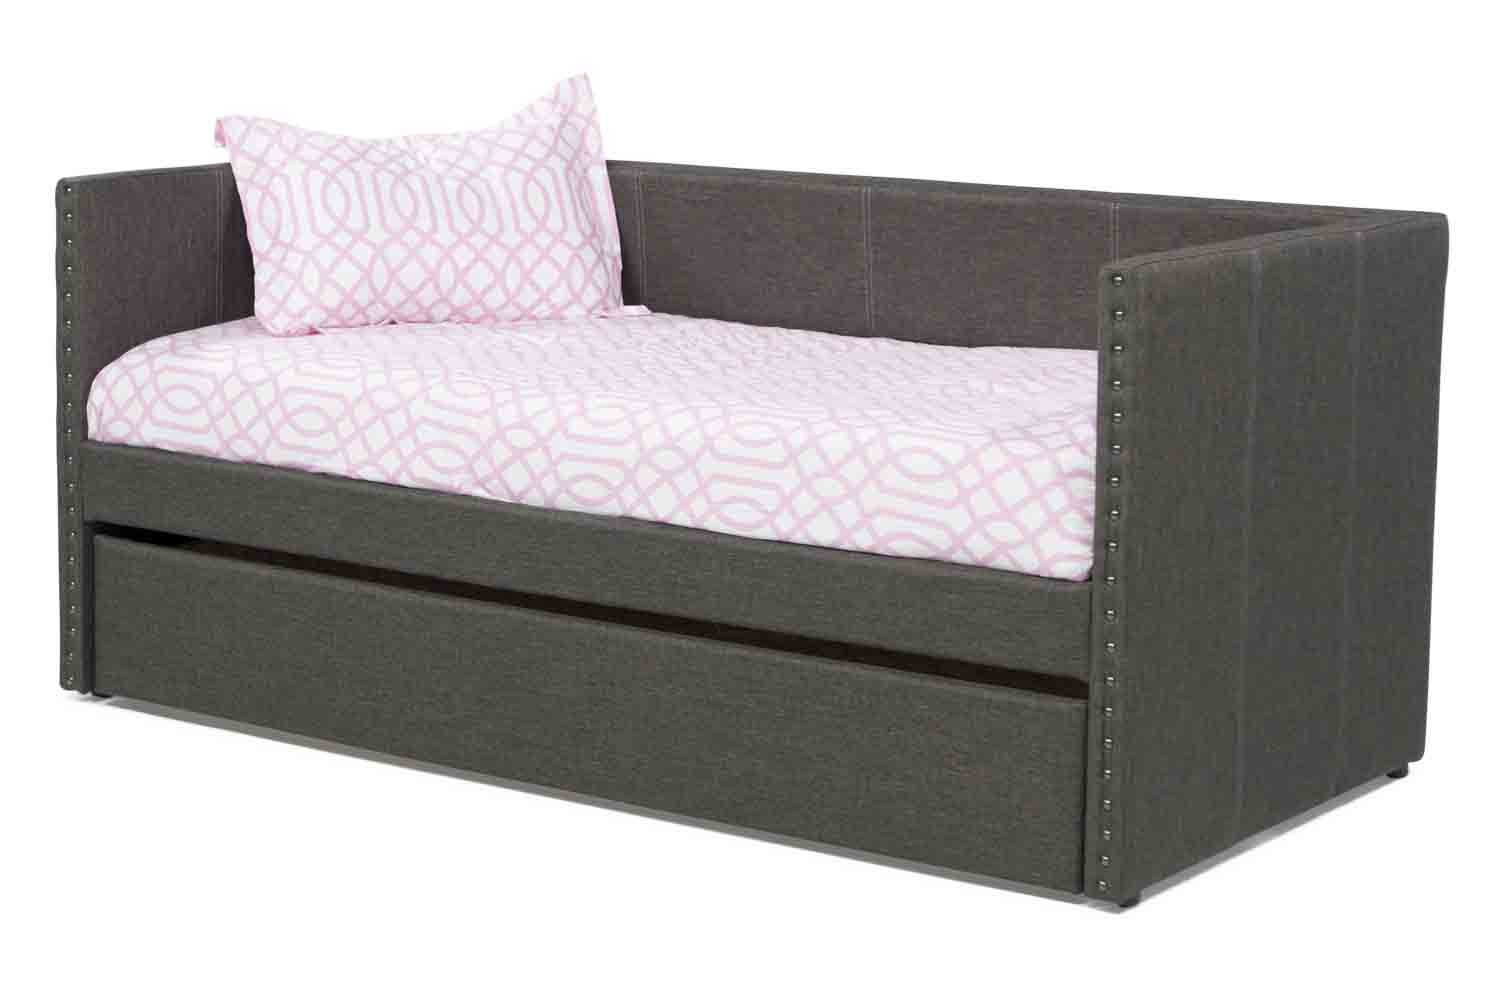 Childrens Beds With Pull Out Bed Underneath Kid S Beds Mor Furniture For Less